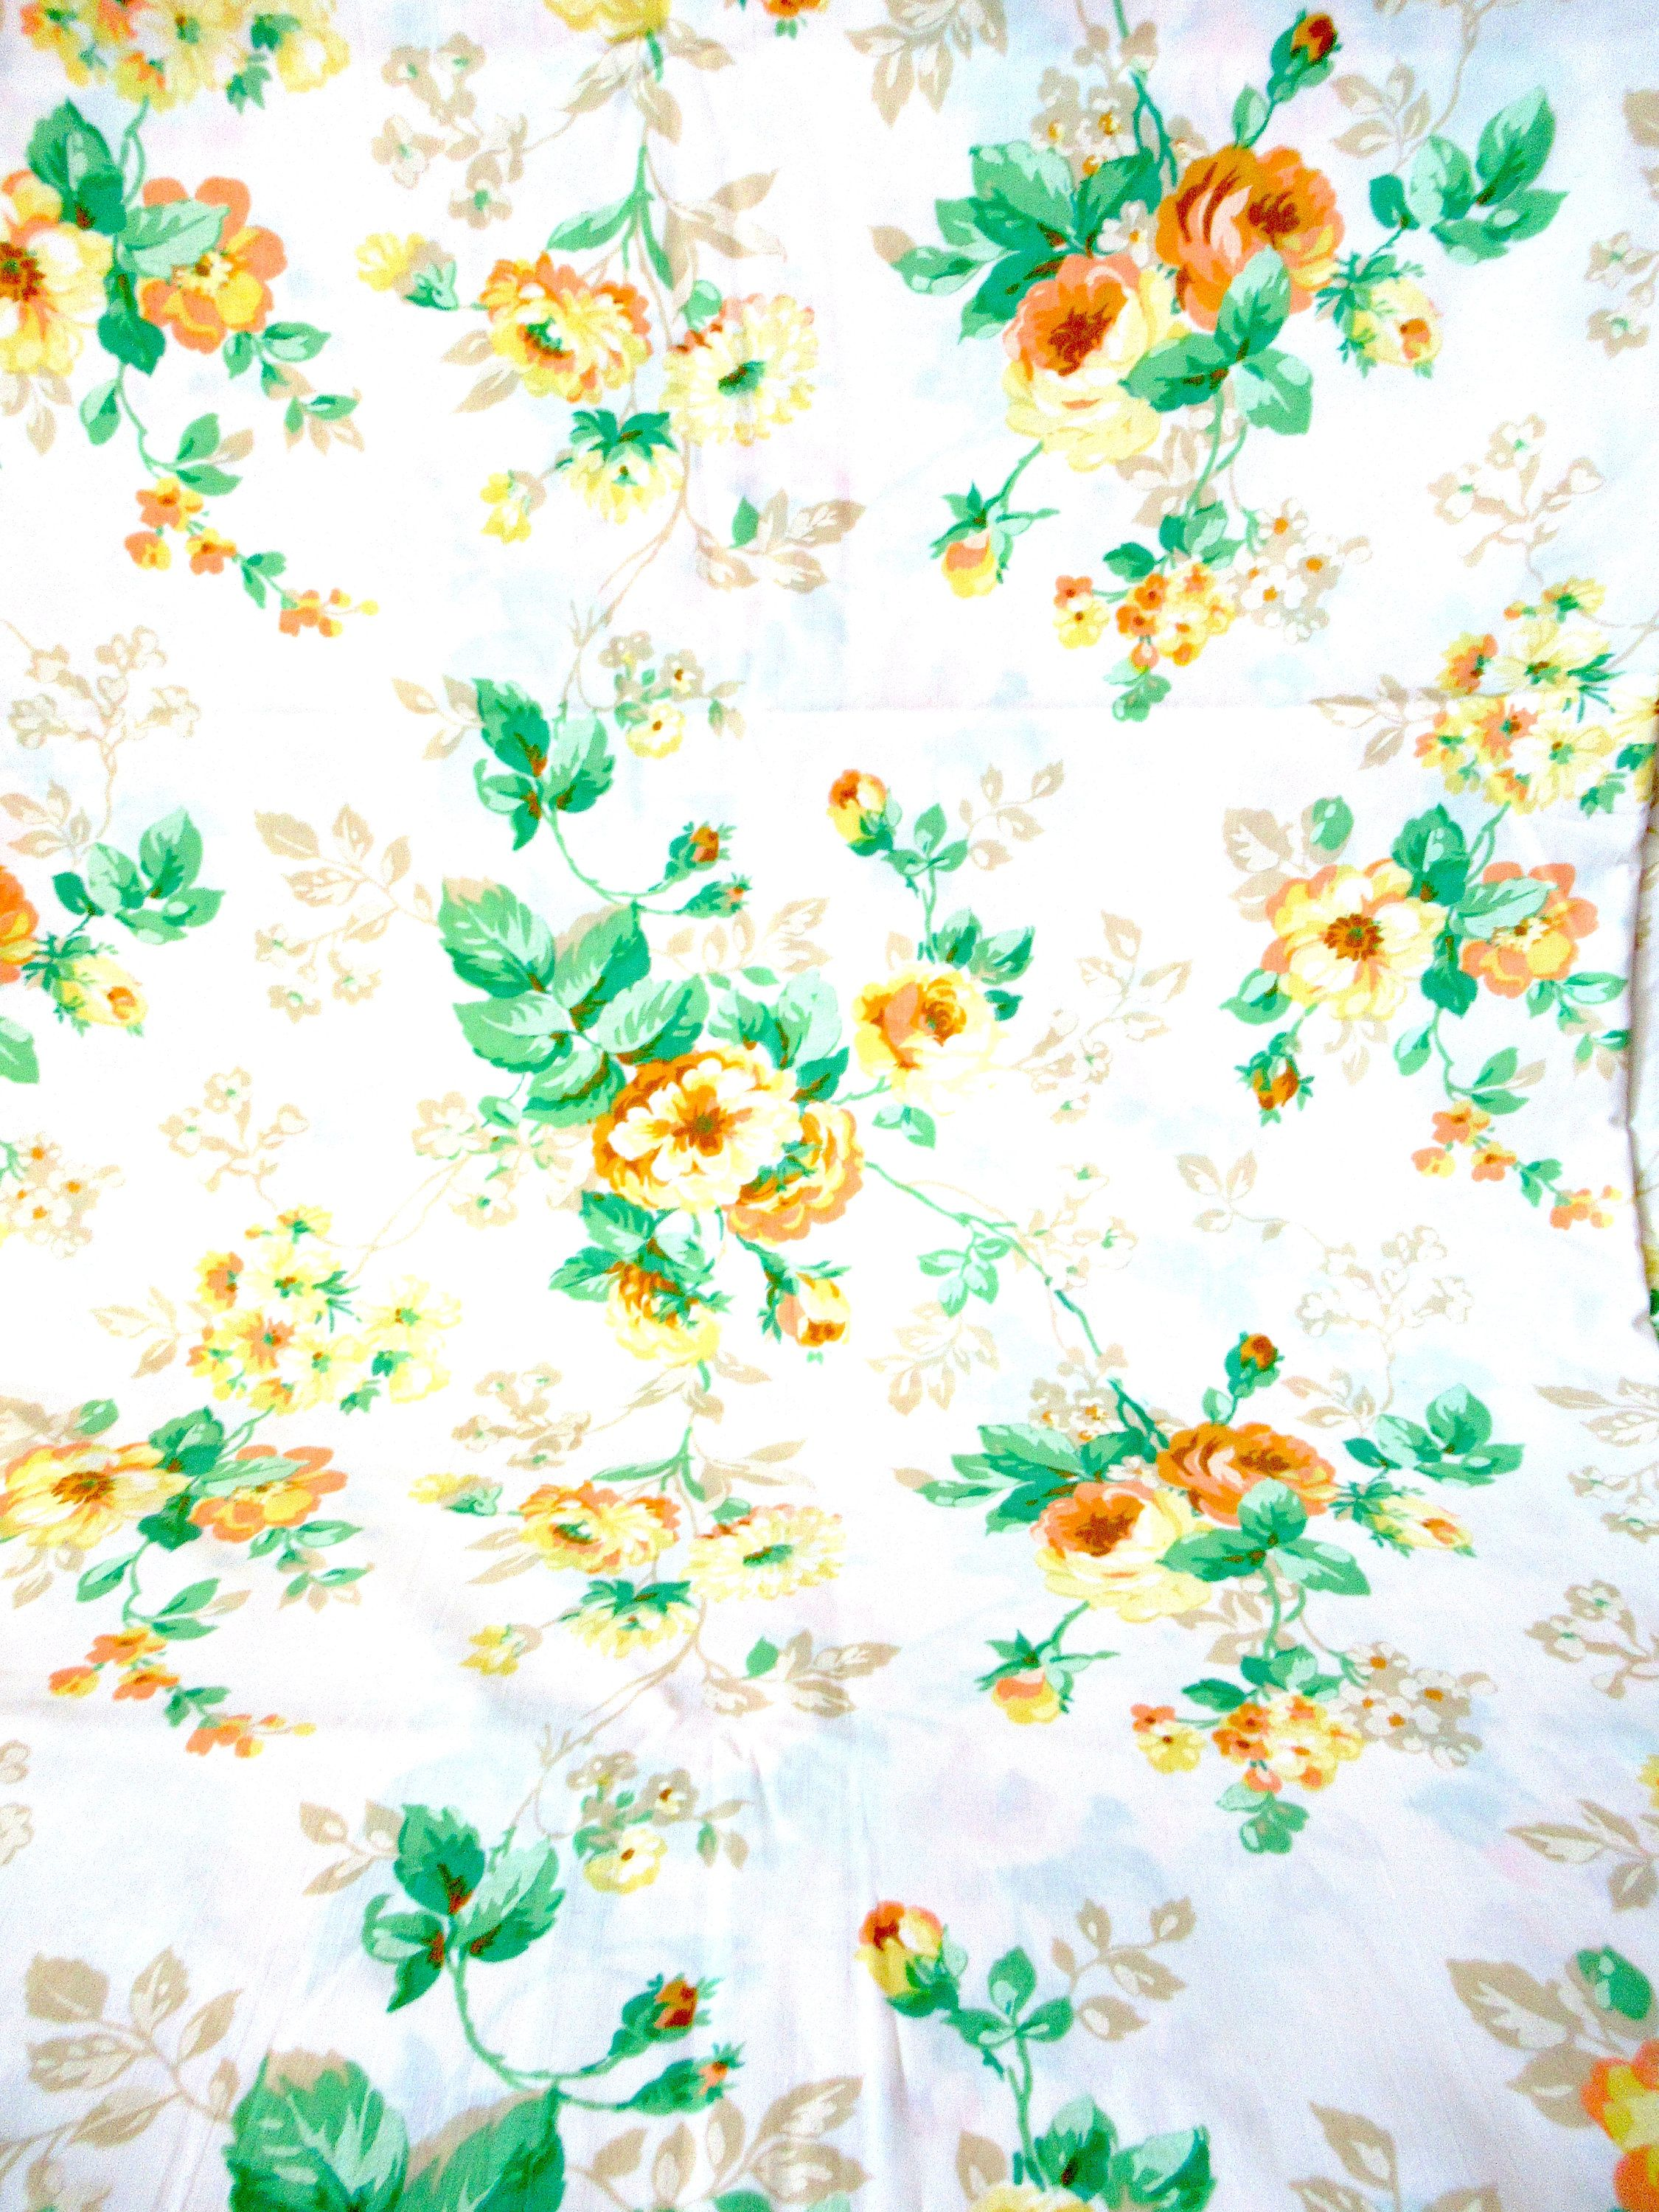 Vintage Bedding, Sheet Tablecloth, Vintage Fabric, Country Bed Sheet, King  Bed Size, King Bed Sheet, Yellow Flower Fabric, Flower Fabric By  Lovesknitting On ...